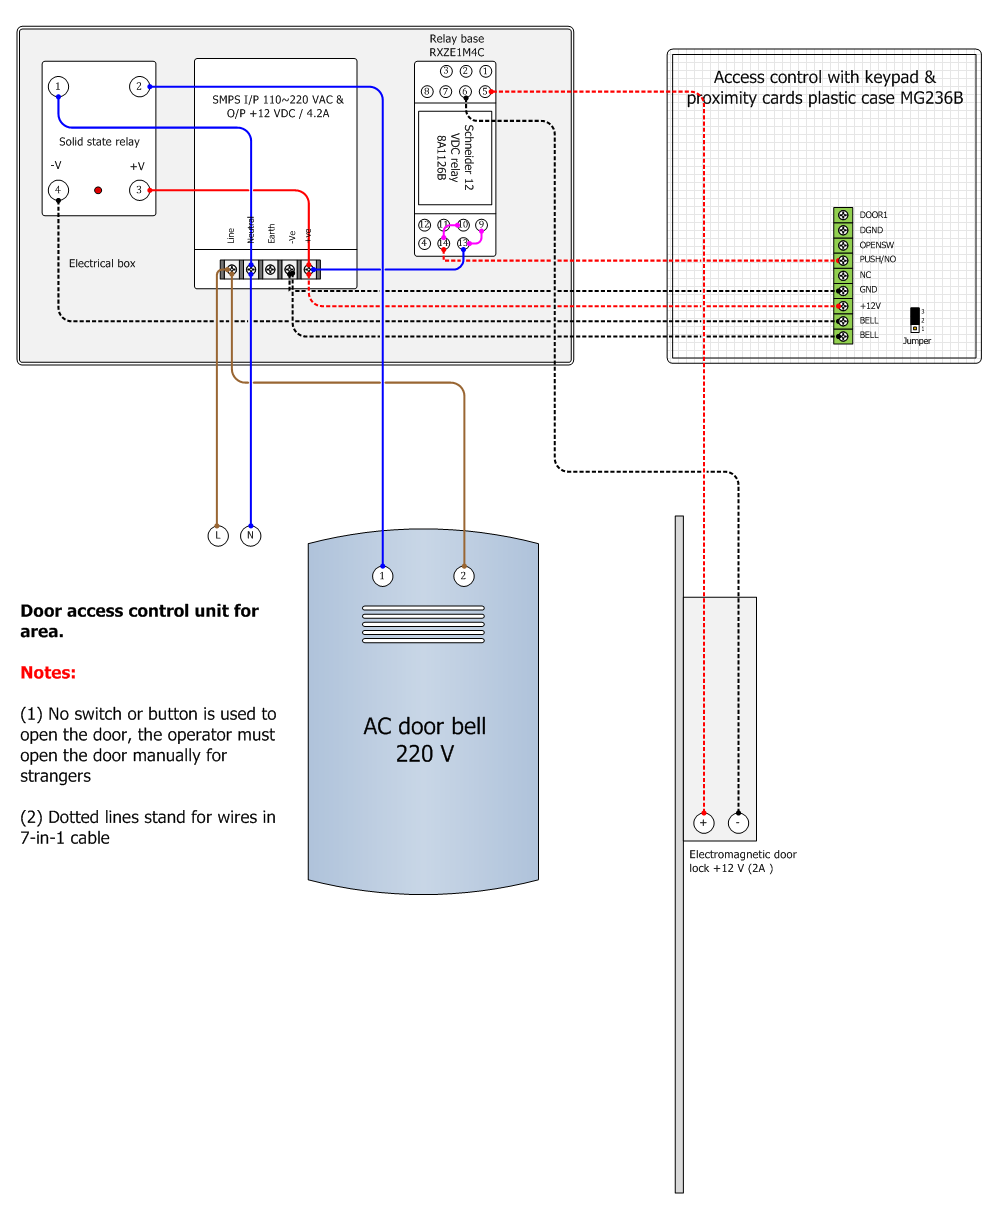 small resolution of eng shady mohsen blog access control mg236b wiring diagramac door bell